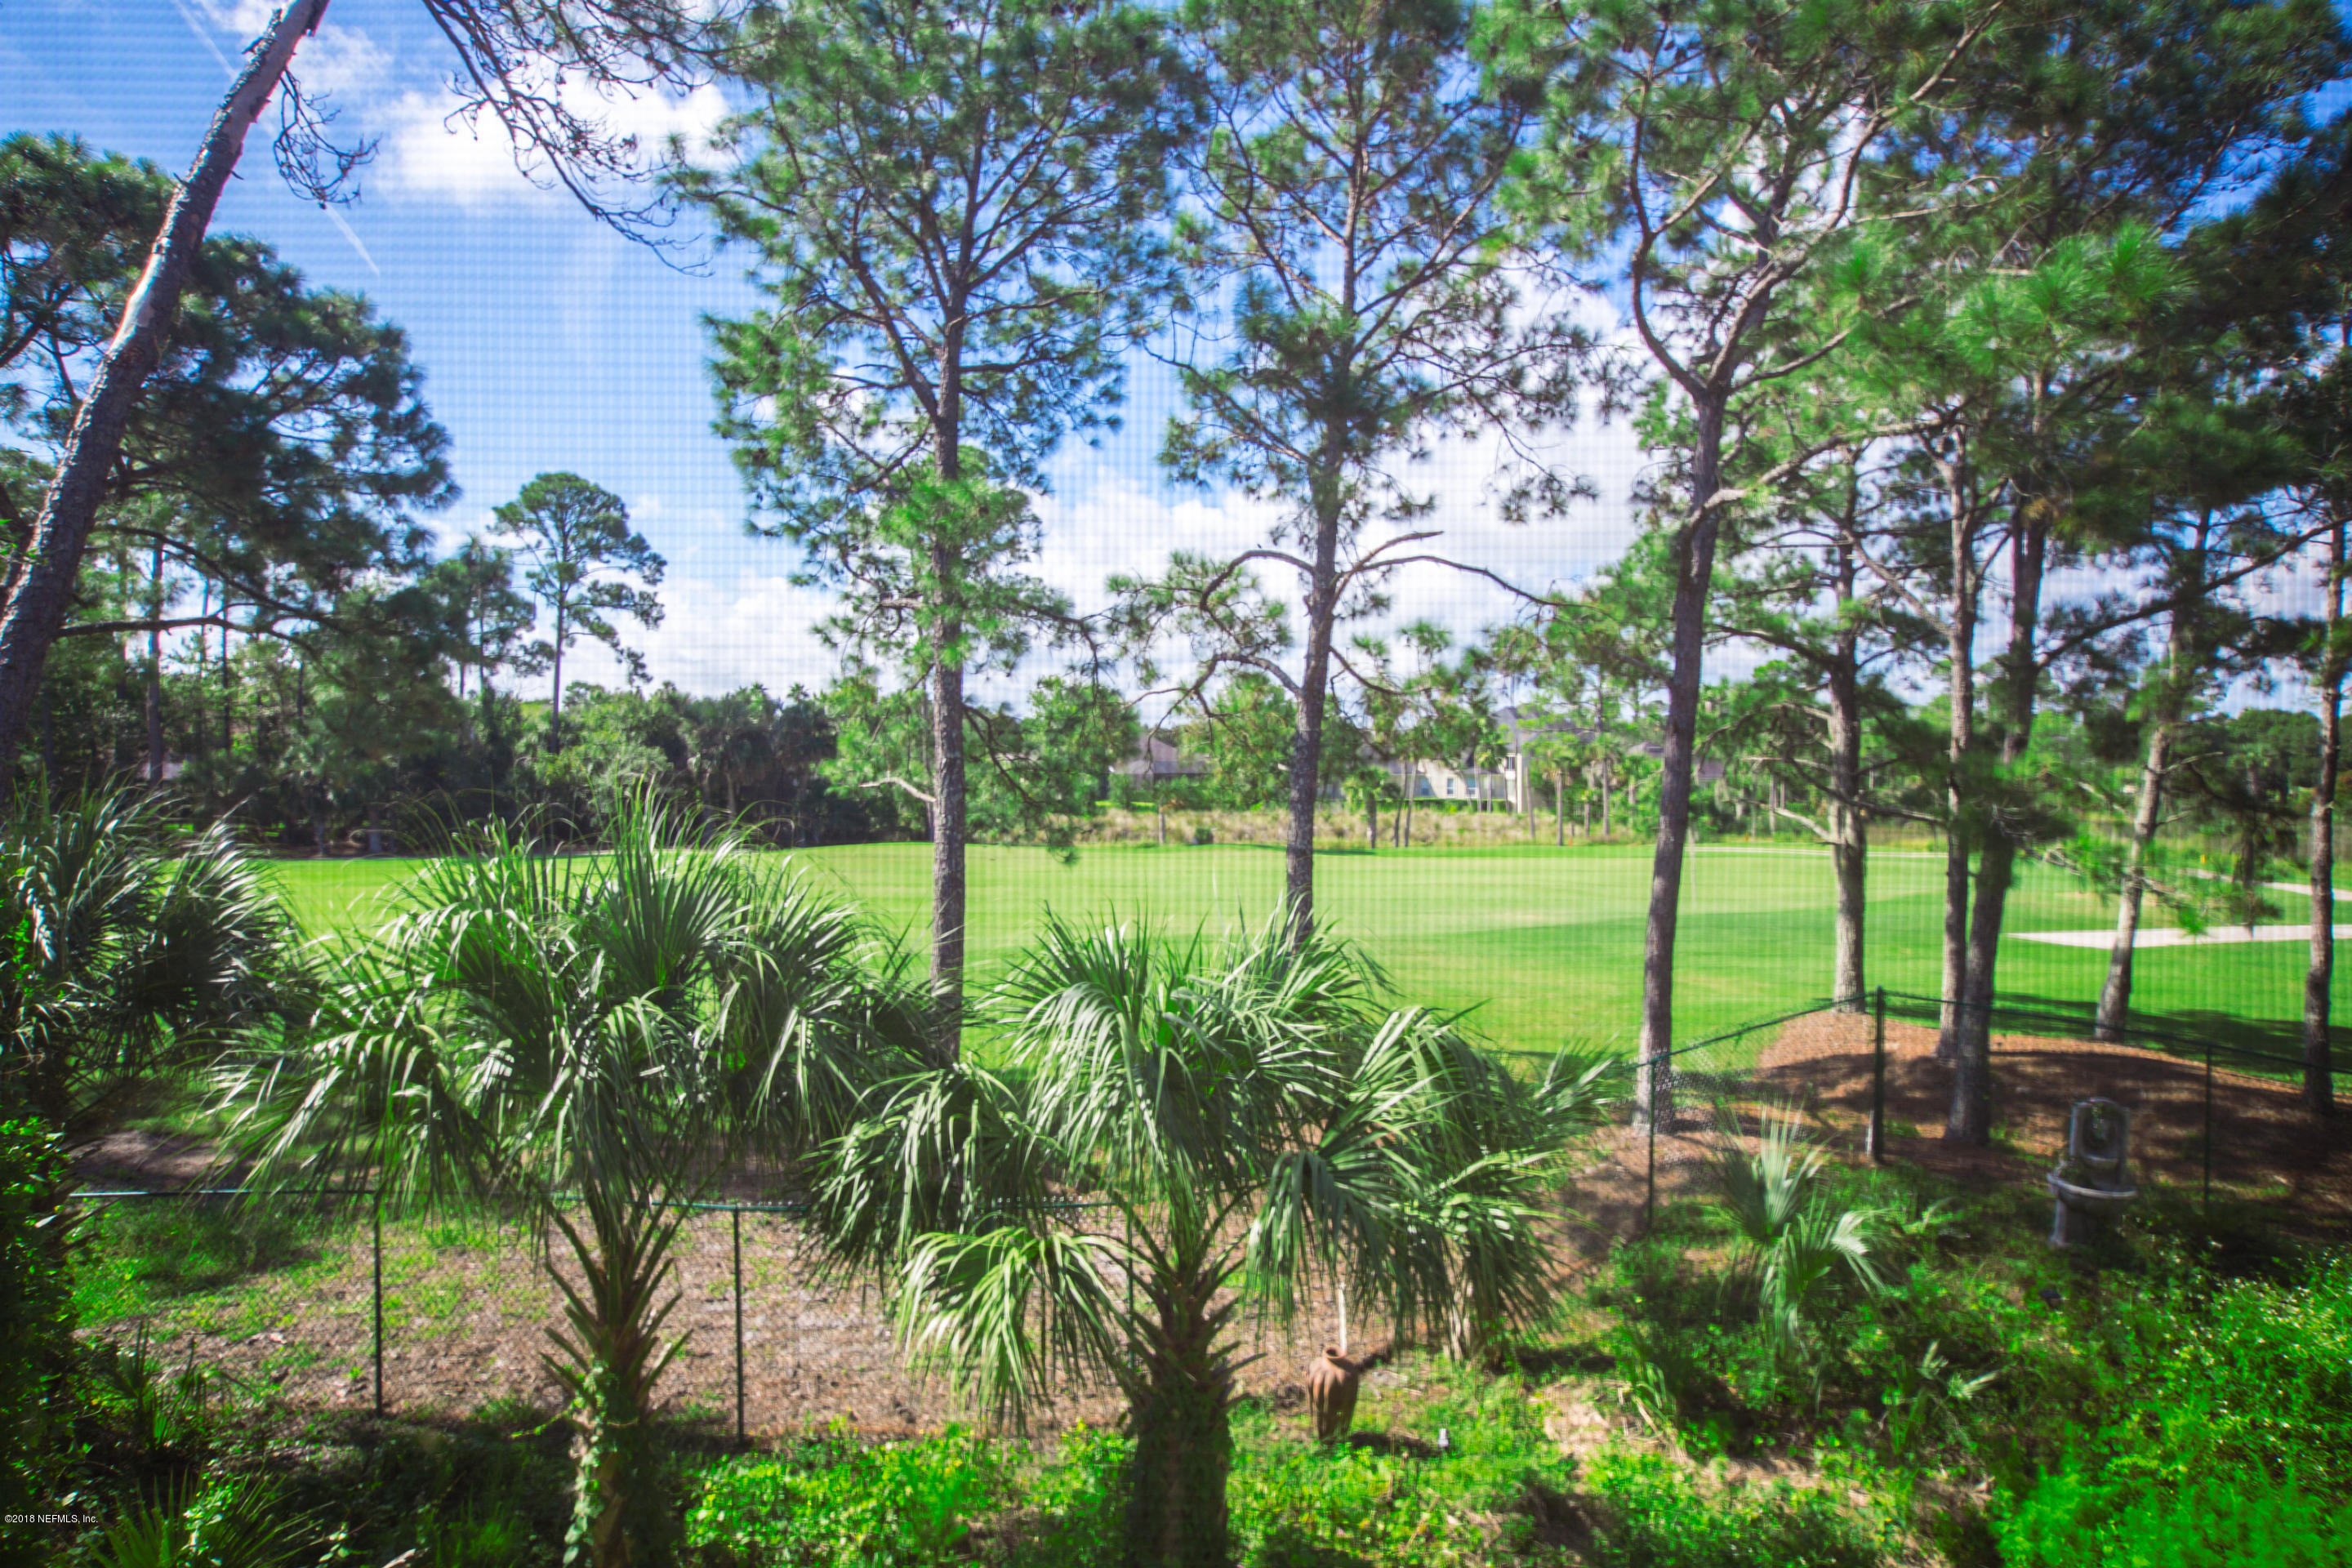 1800 THE GREENS, JACKSONVILLE BEACH, FLORIDA 32250, 2 Bedrooms Bedrooms, ,2 BathroomsBathrooms,Residential - condos/townhomes,For sale,THE GREENS,959949